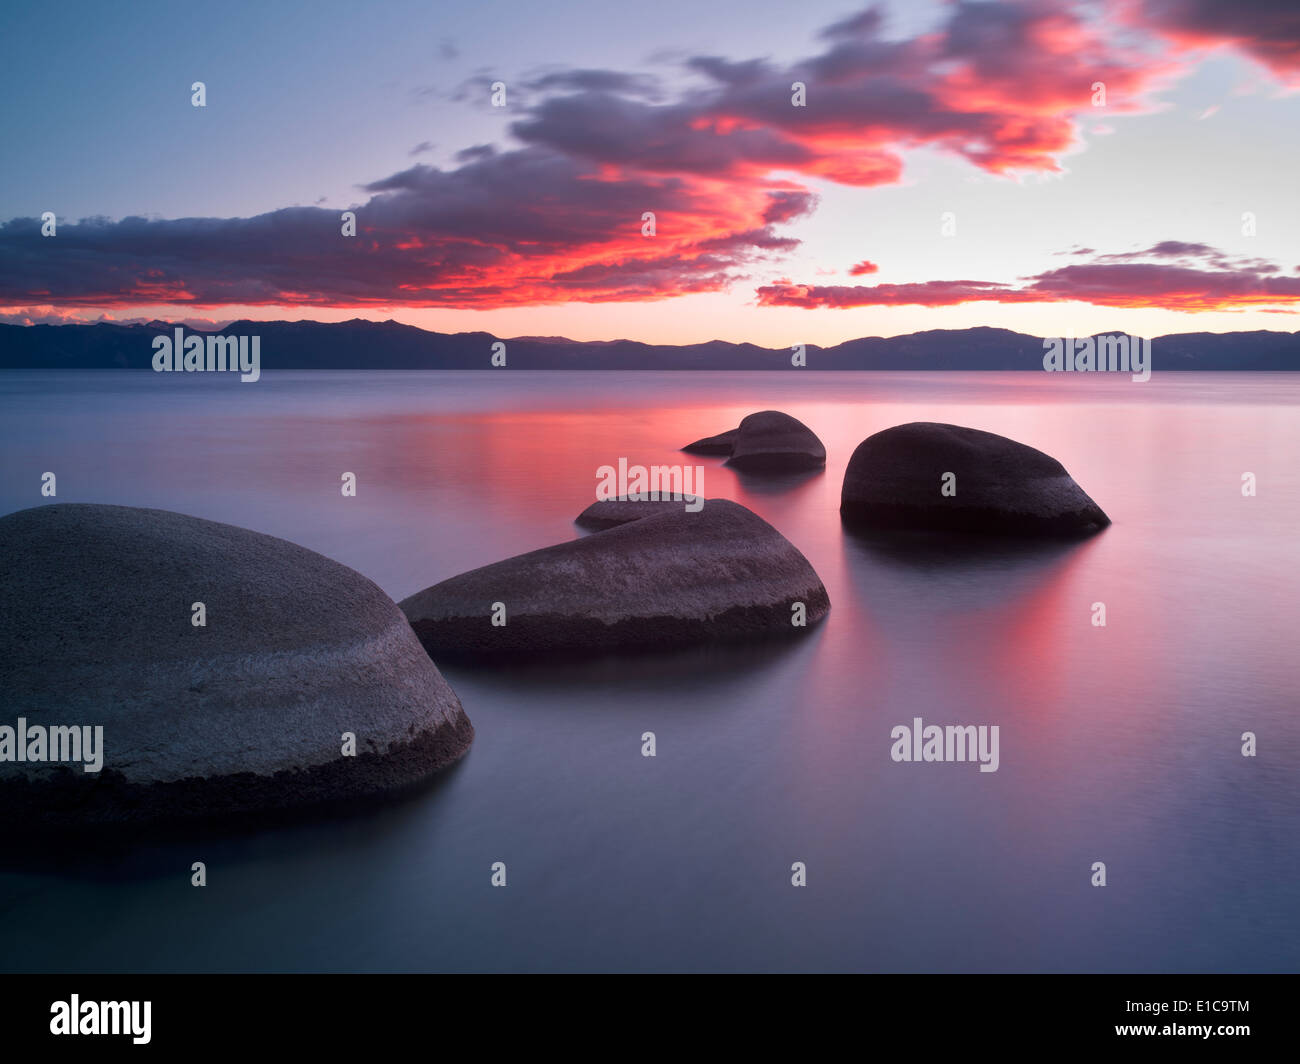 Sunset at Chimney Beach. Lake Tahoe, Nevada - Stock Image